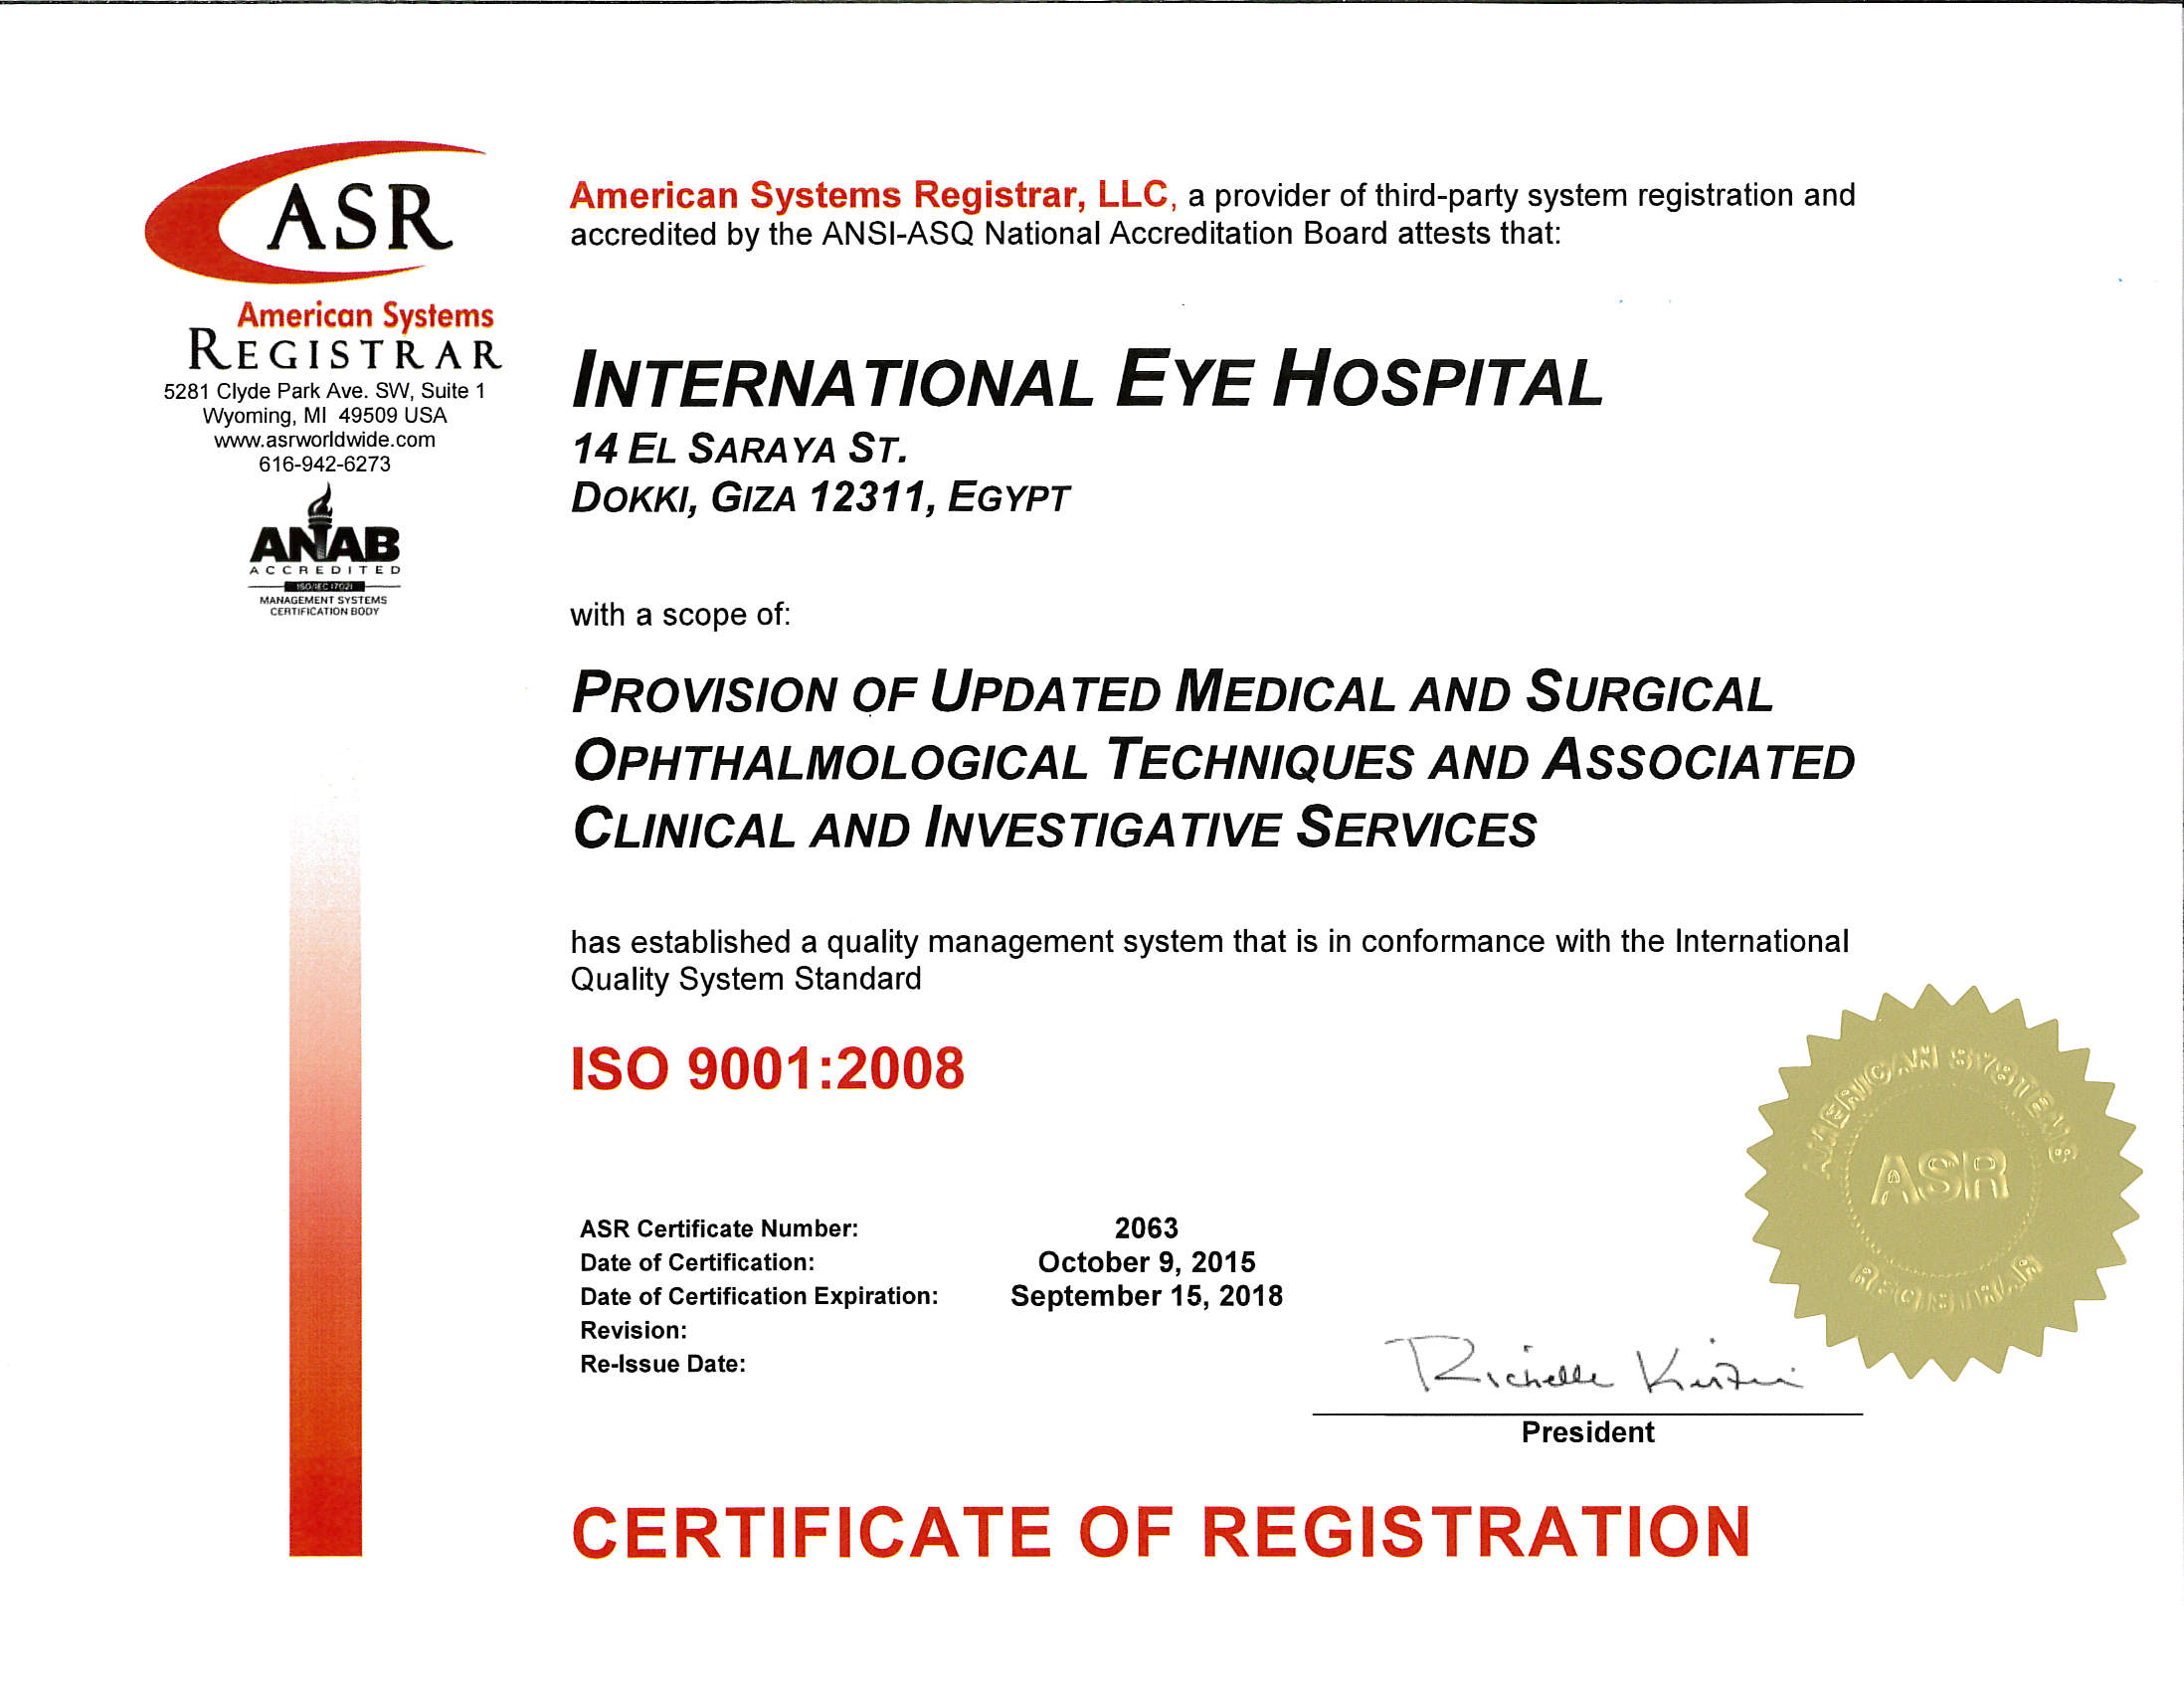 //iehegypt.com/ieh2/wp-content/uploads/2018/05/2063-International-Eye-Hospital-ISO-9001-Certificate-Oct-2015-signed-stamped.jpg